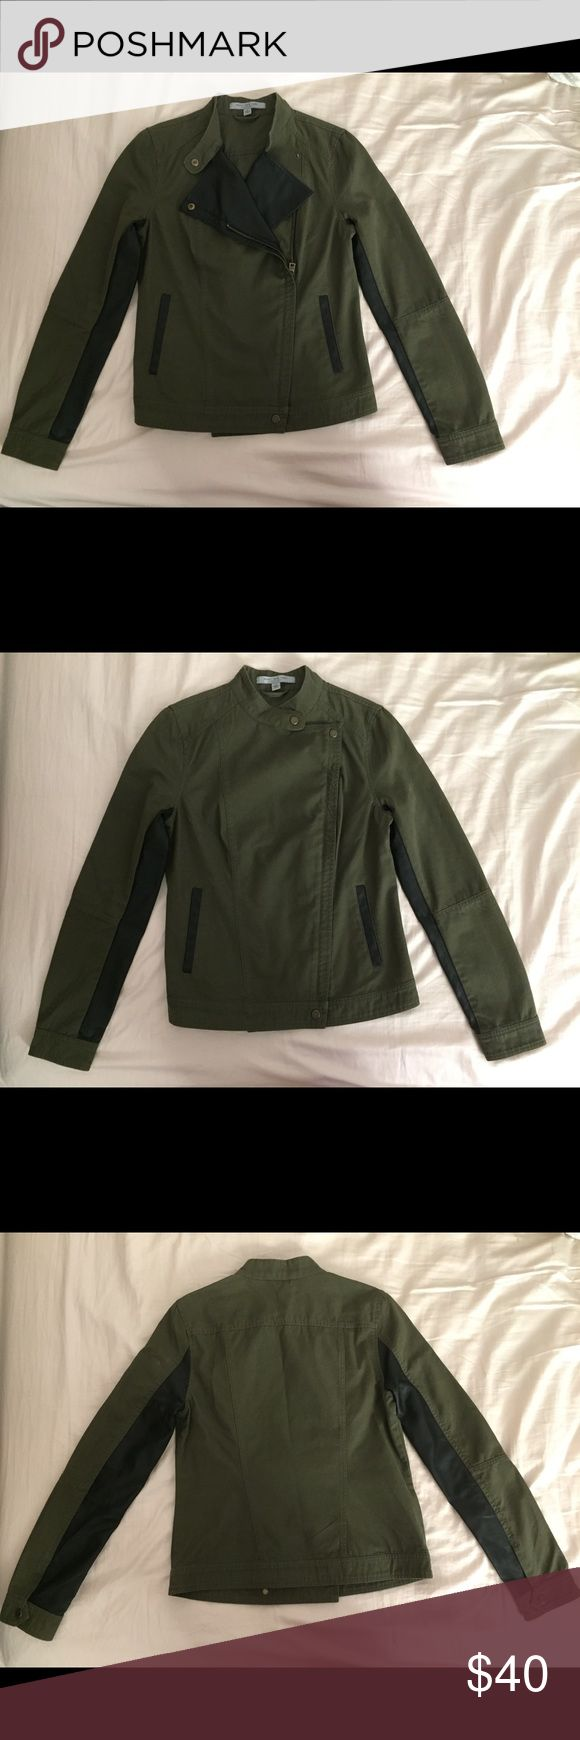 Excellent condition Andrew Marc green jacket Excellent condition Andrew Marc green jacket Andrew Marc Jackets & Coats